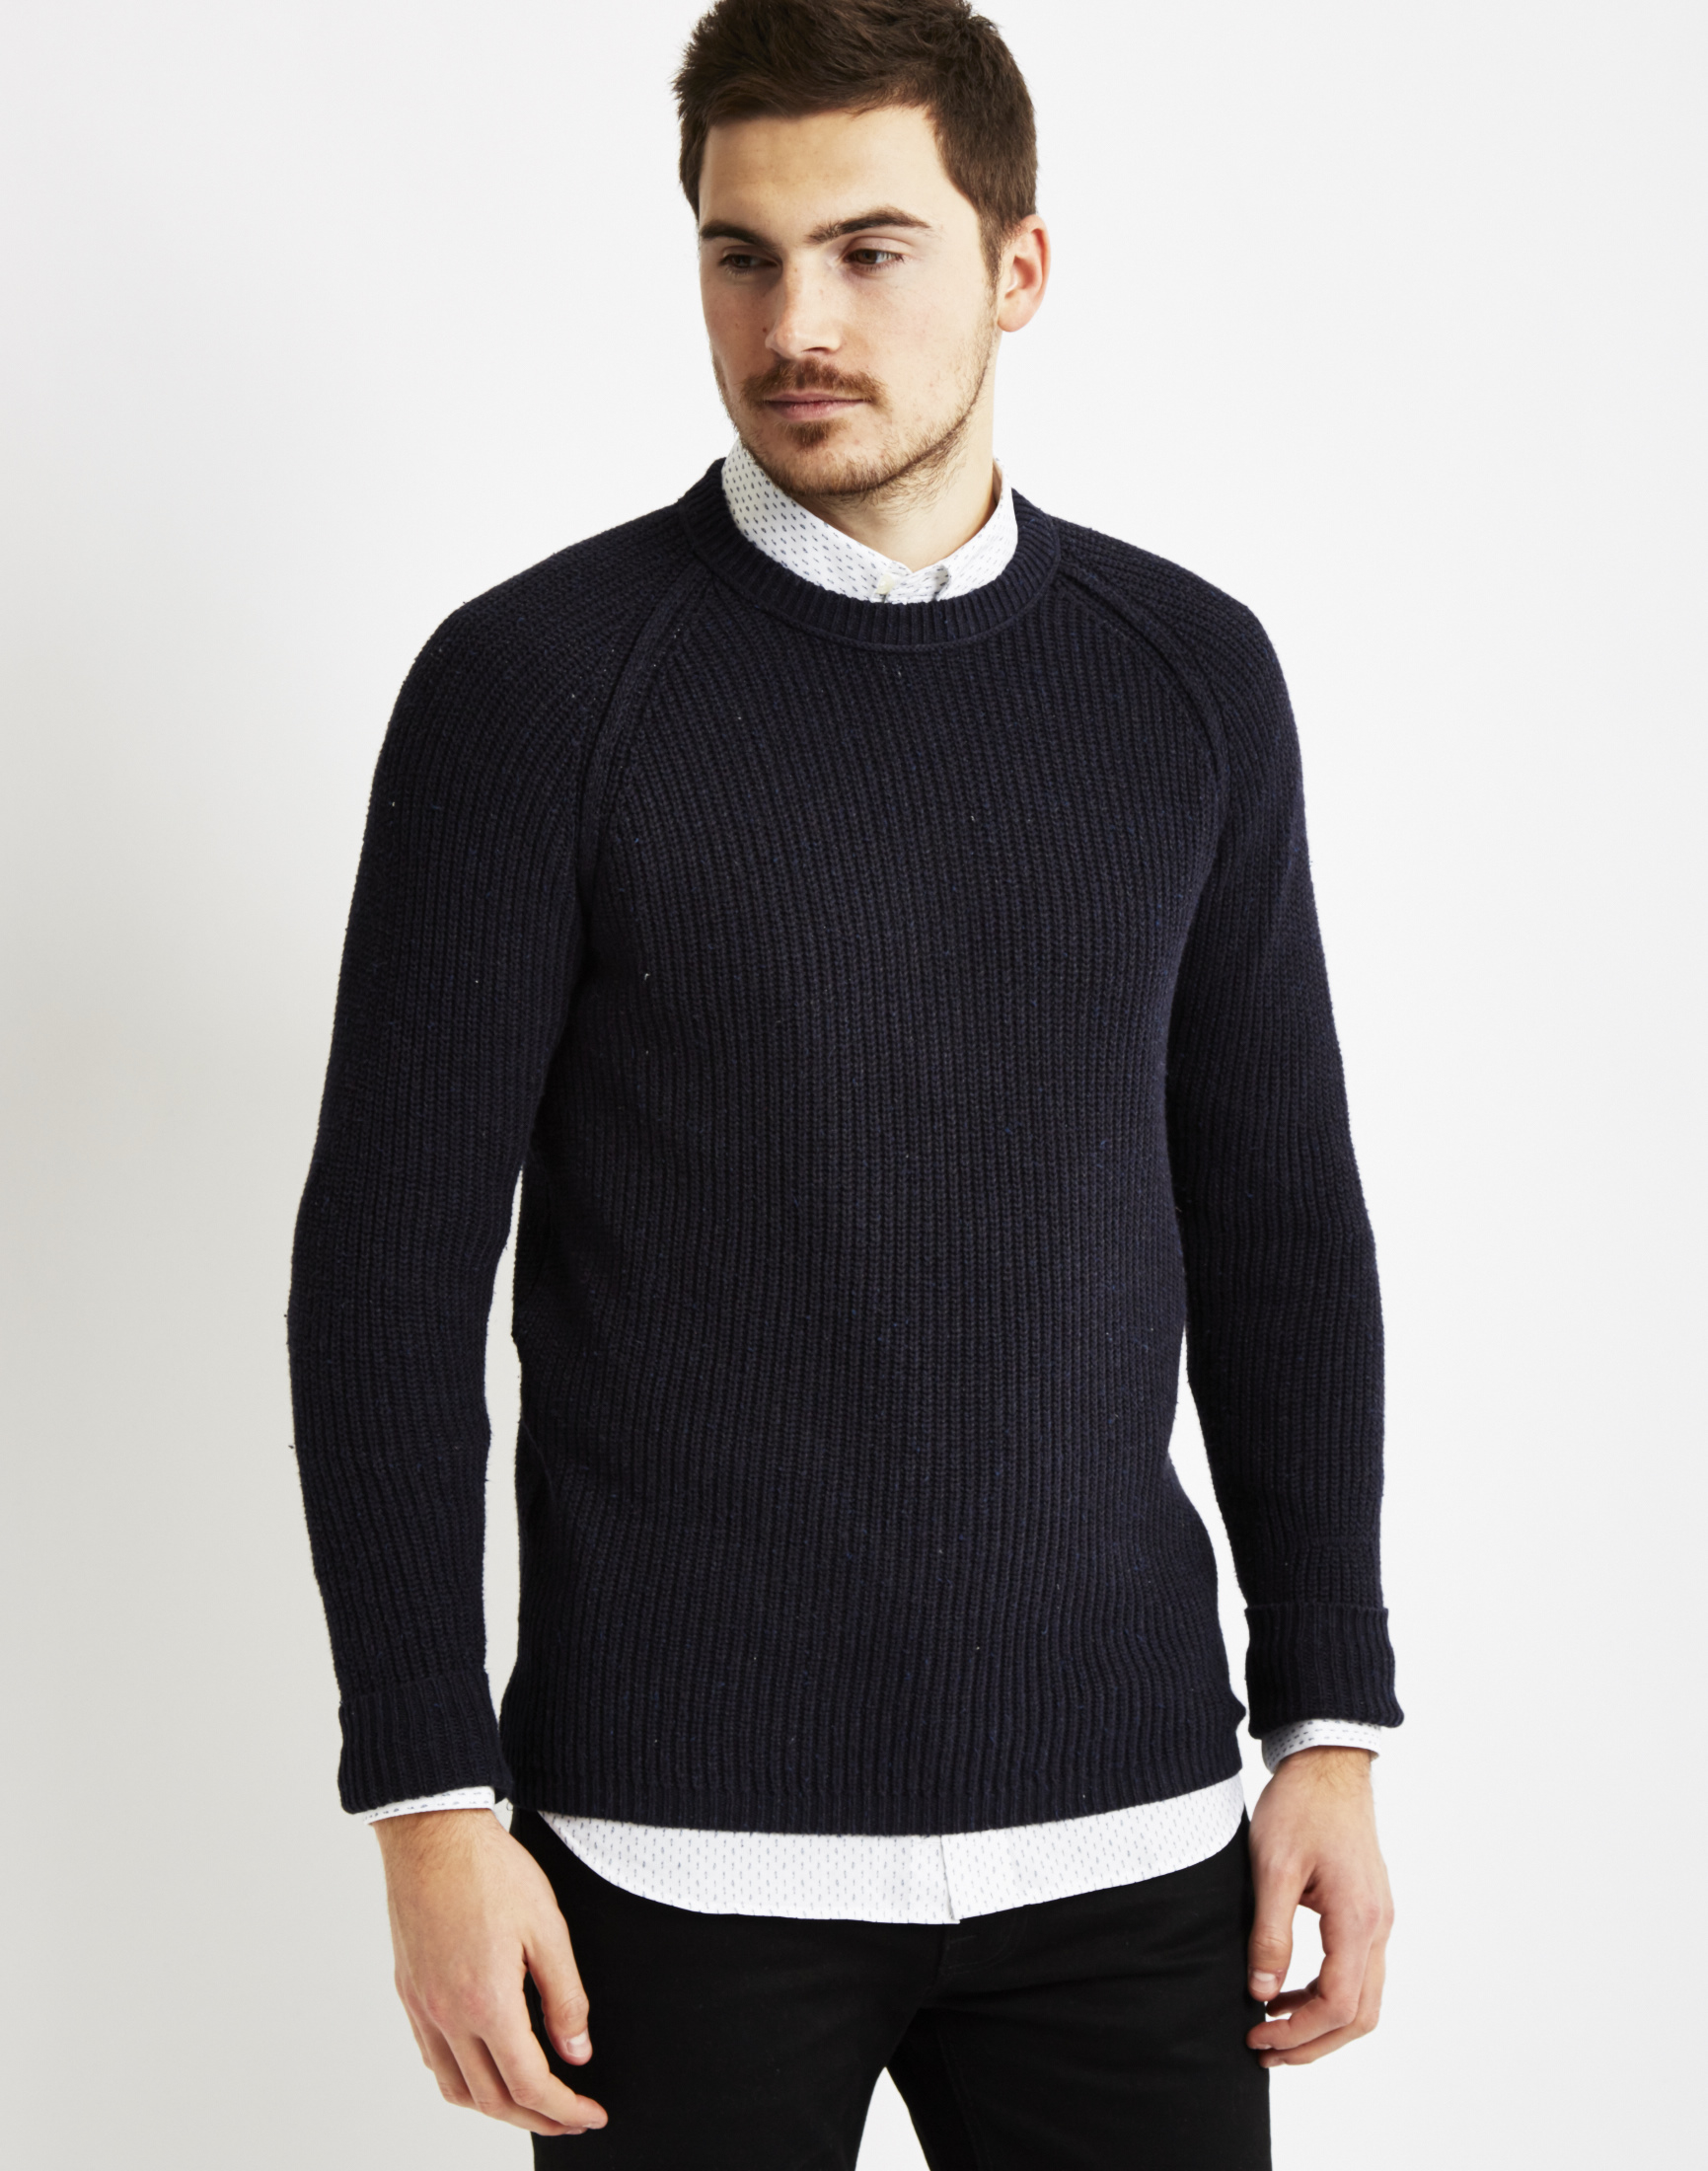 a53f16c21676 Lyst - Only   Sons Mens Knitted Crew Neck Sweatshirt Navy in Blue ...